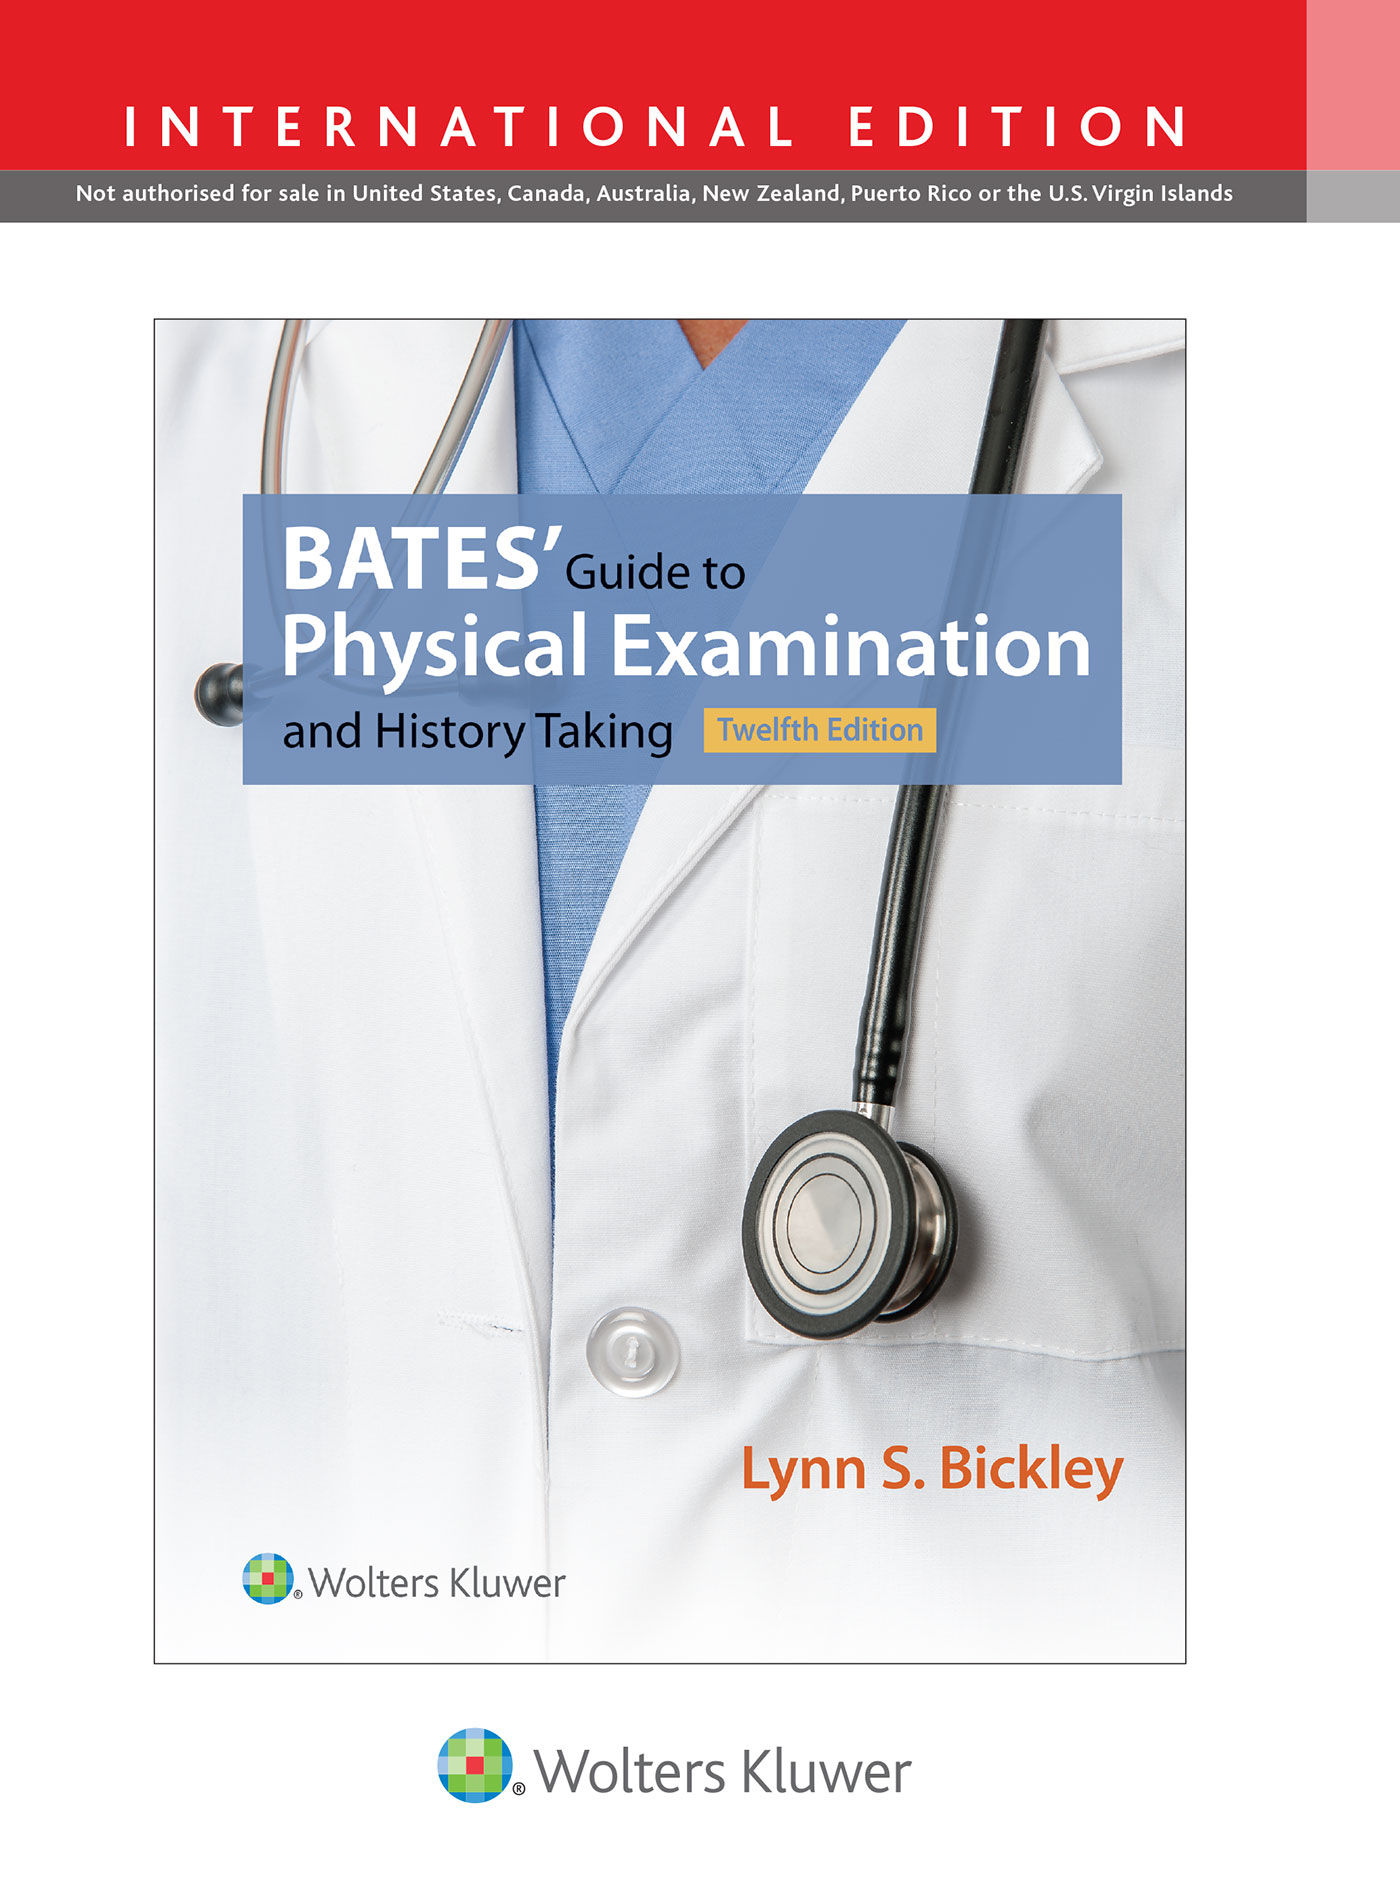 bates guide to physical examination 12th edition pdf free